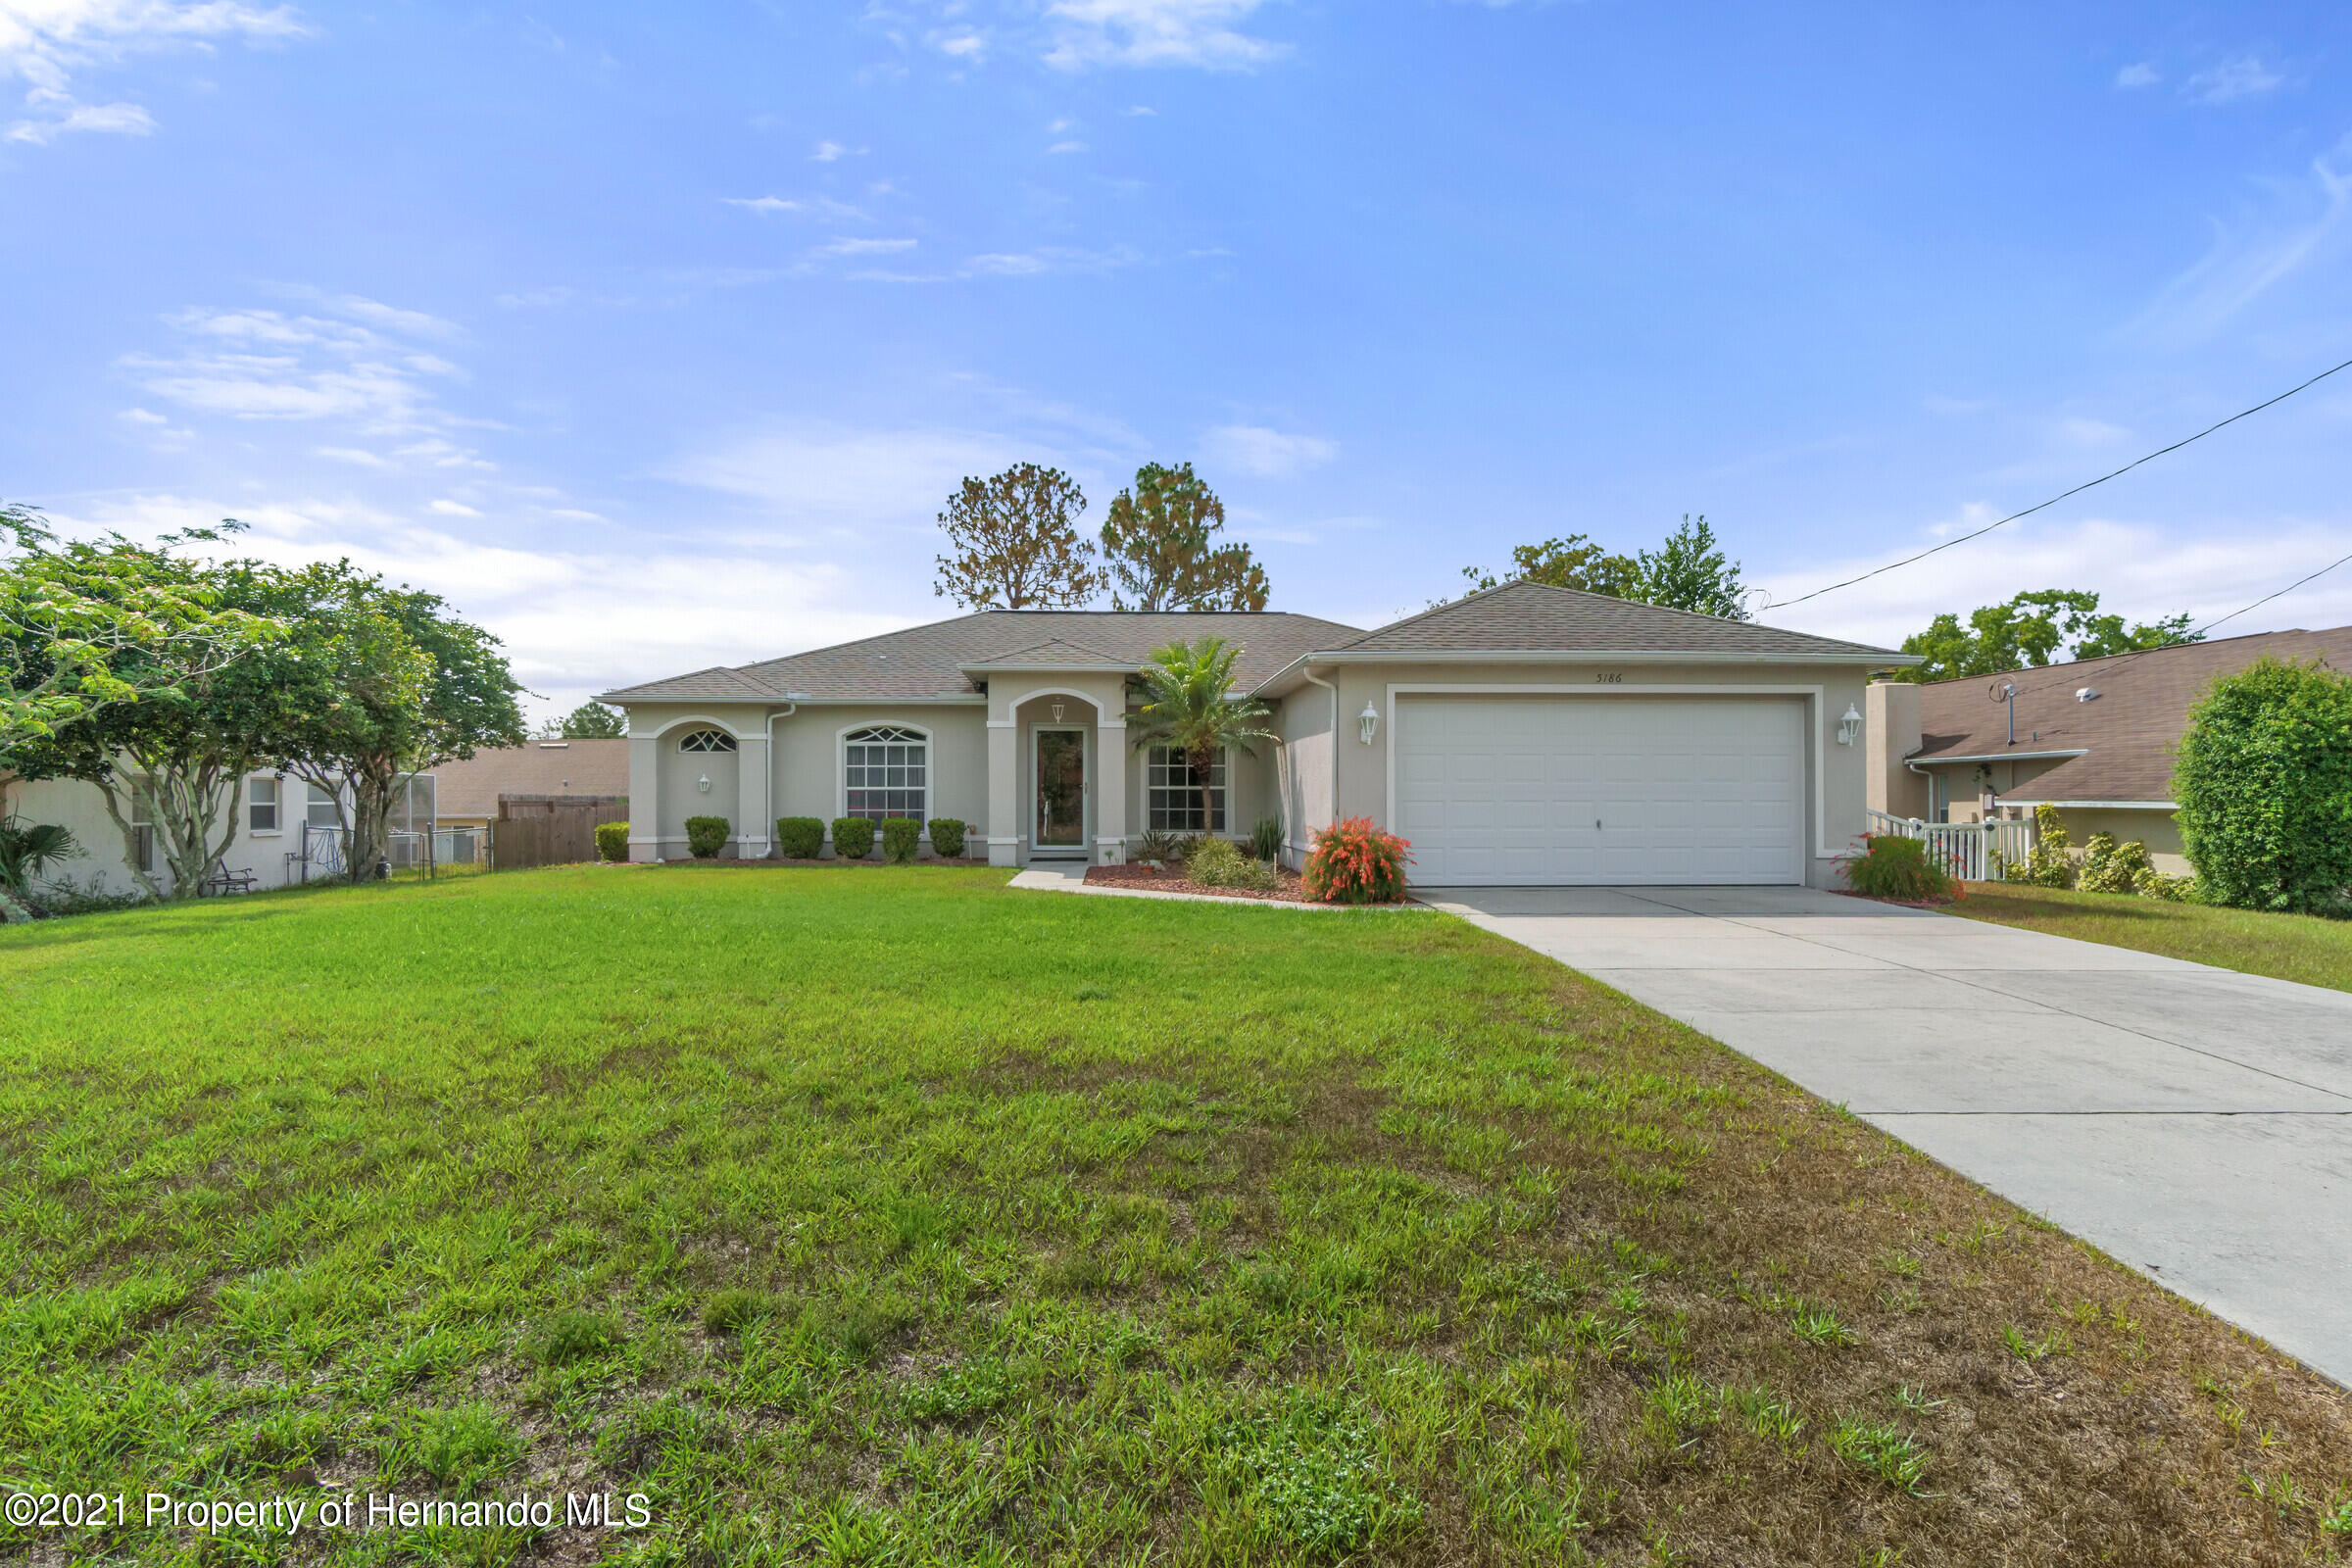 Details for 5186 Roble Avenue, Spring Hill, FL 34608